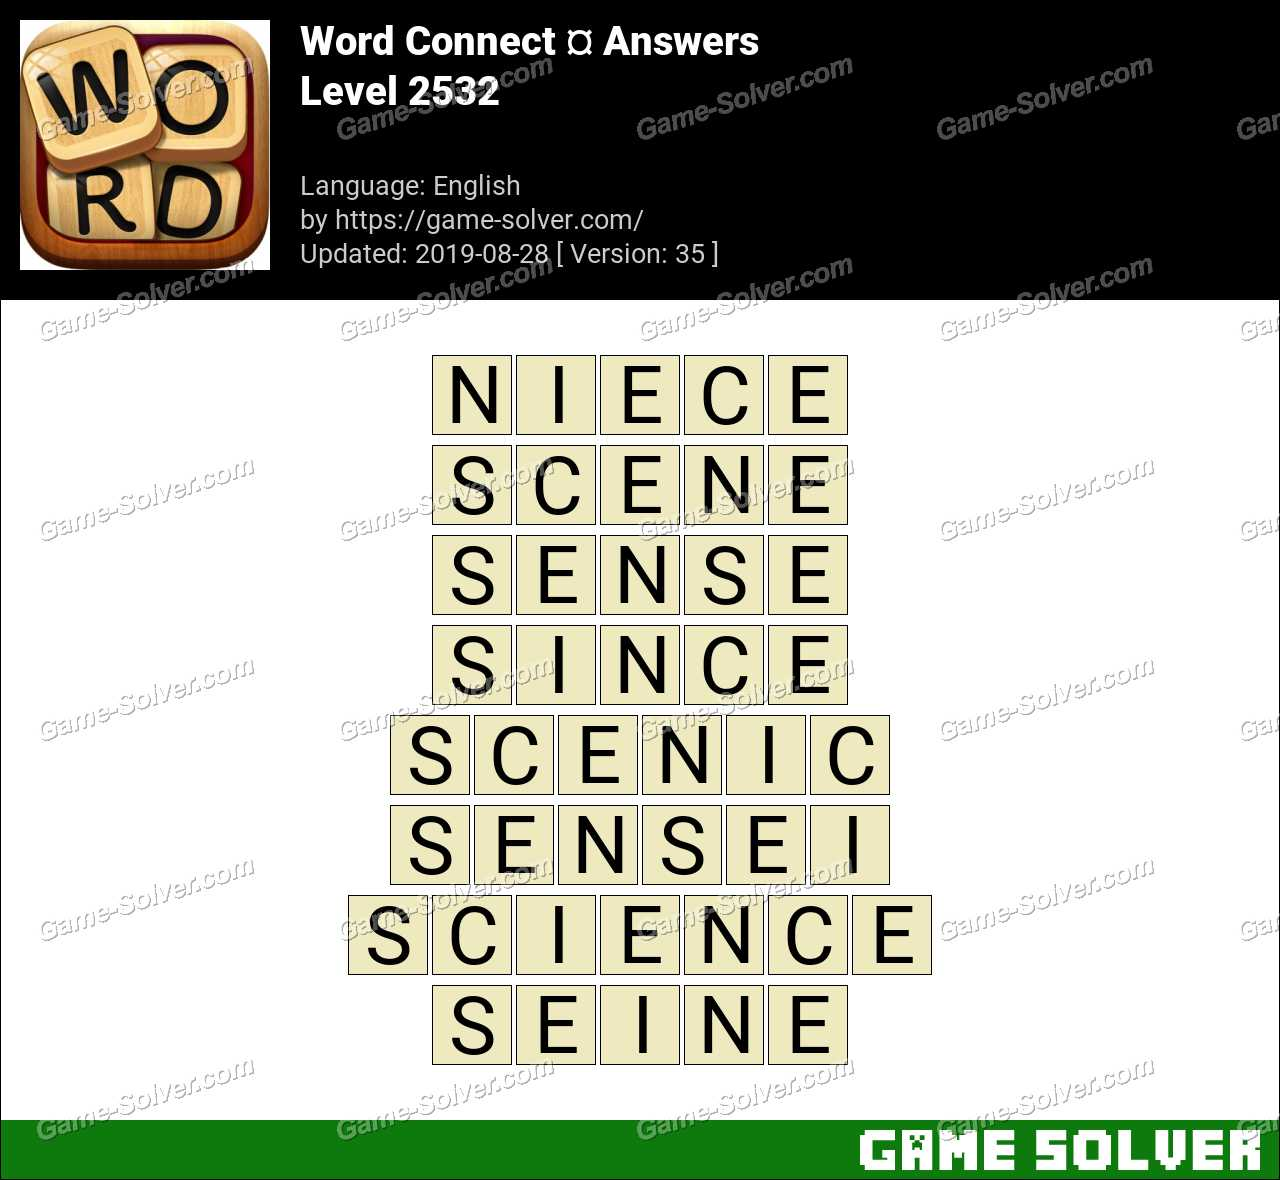 Word Connect Level 2532 Answers